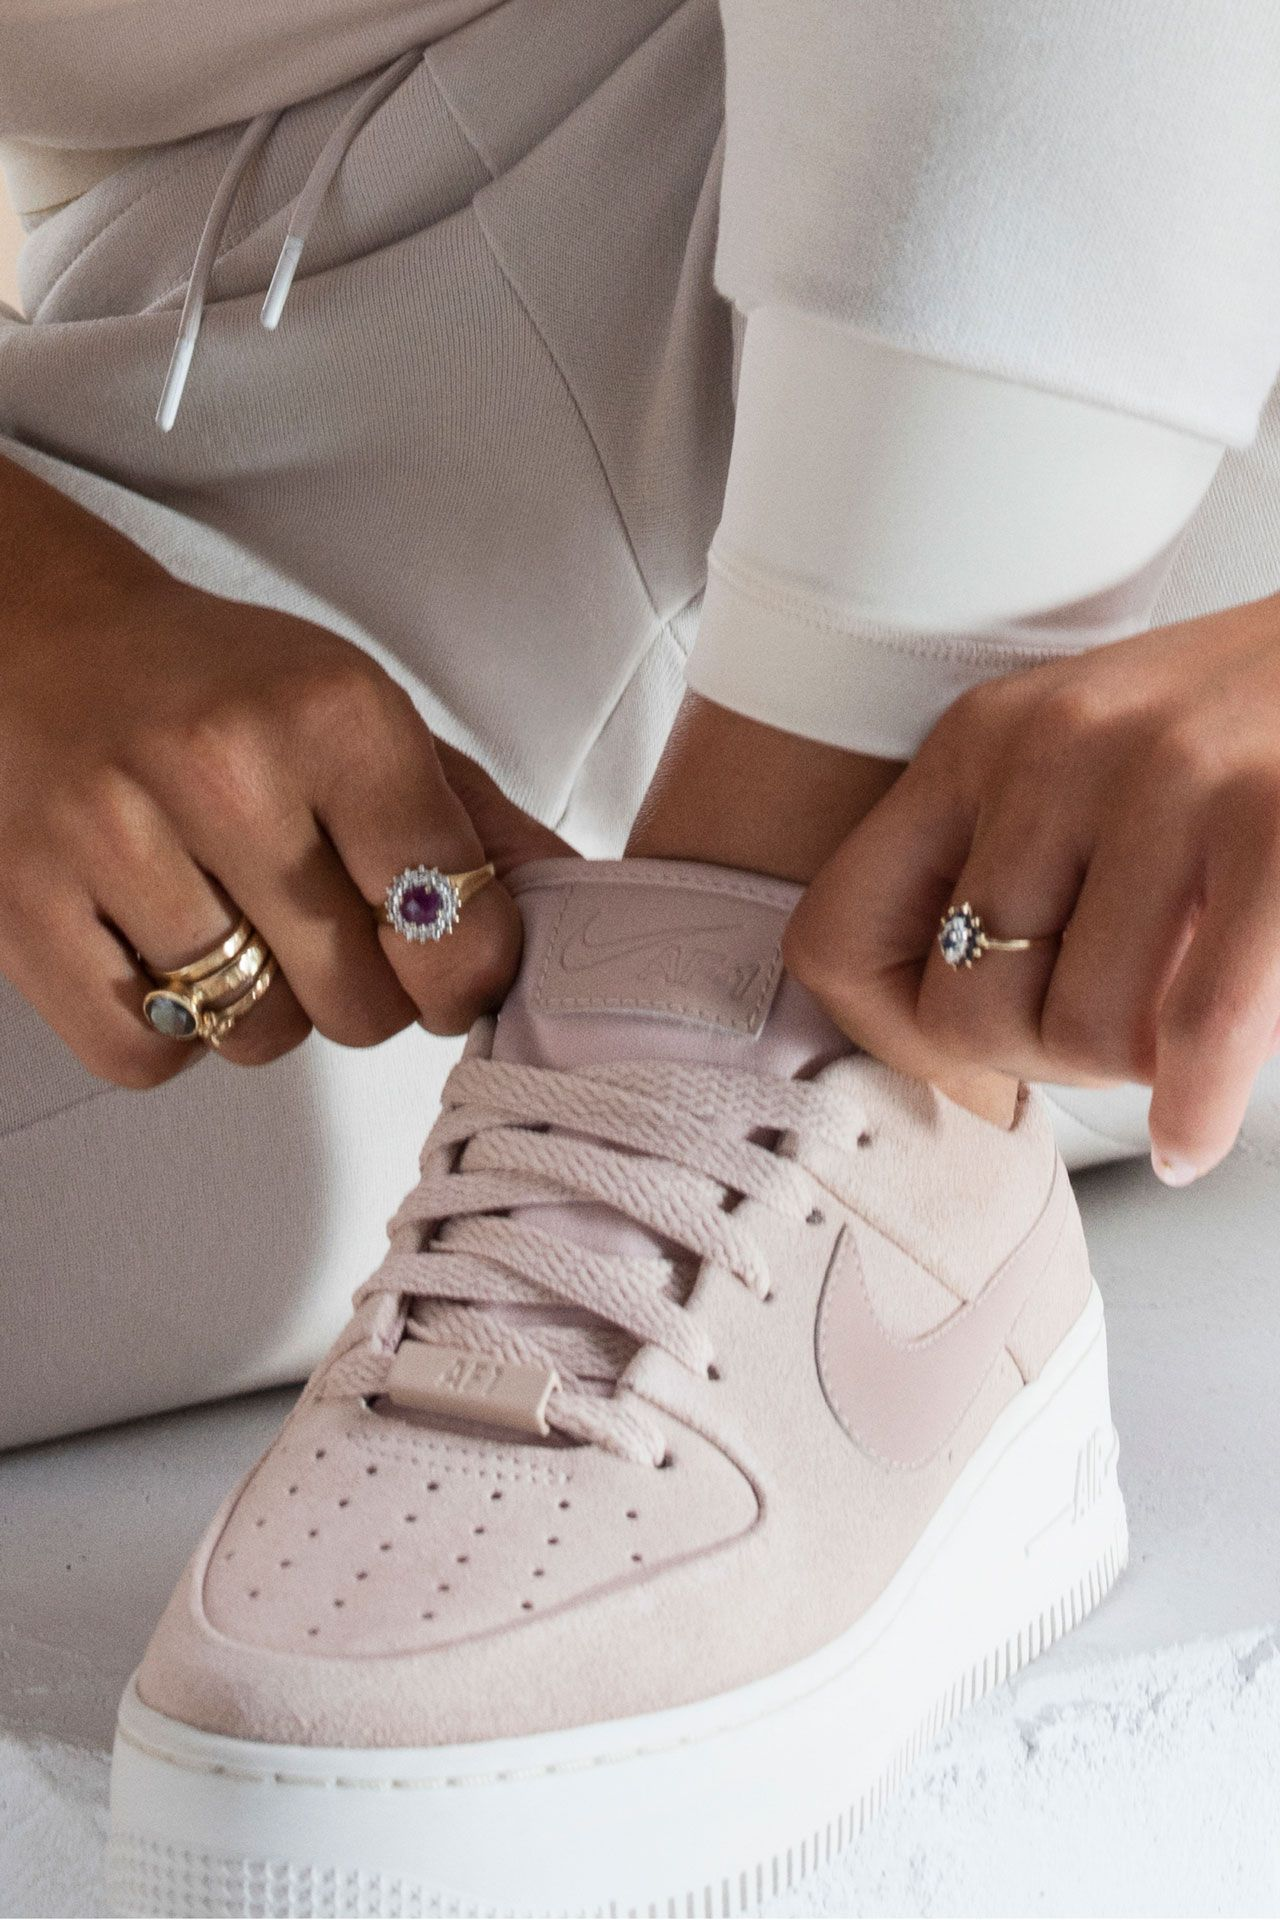 Nike S Senior Footwear Designer Louisa Page Shares The Inspiration Behind The Af1 Sage Low Sneakers Fashion Nike Air Nike Air Force